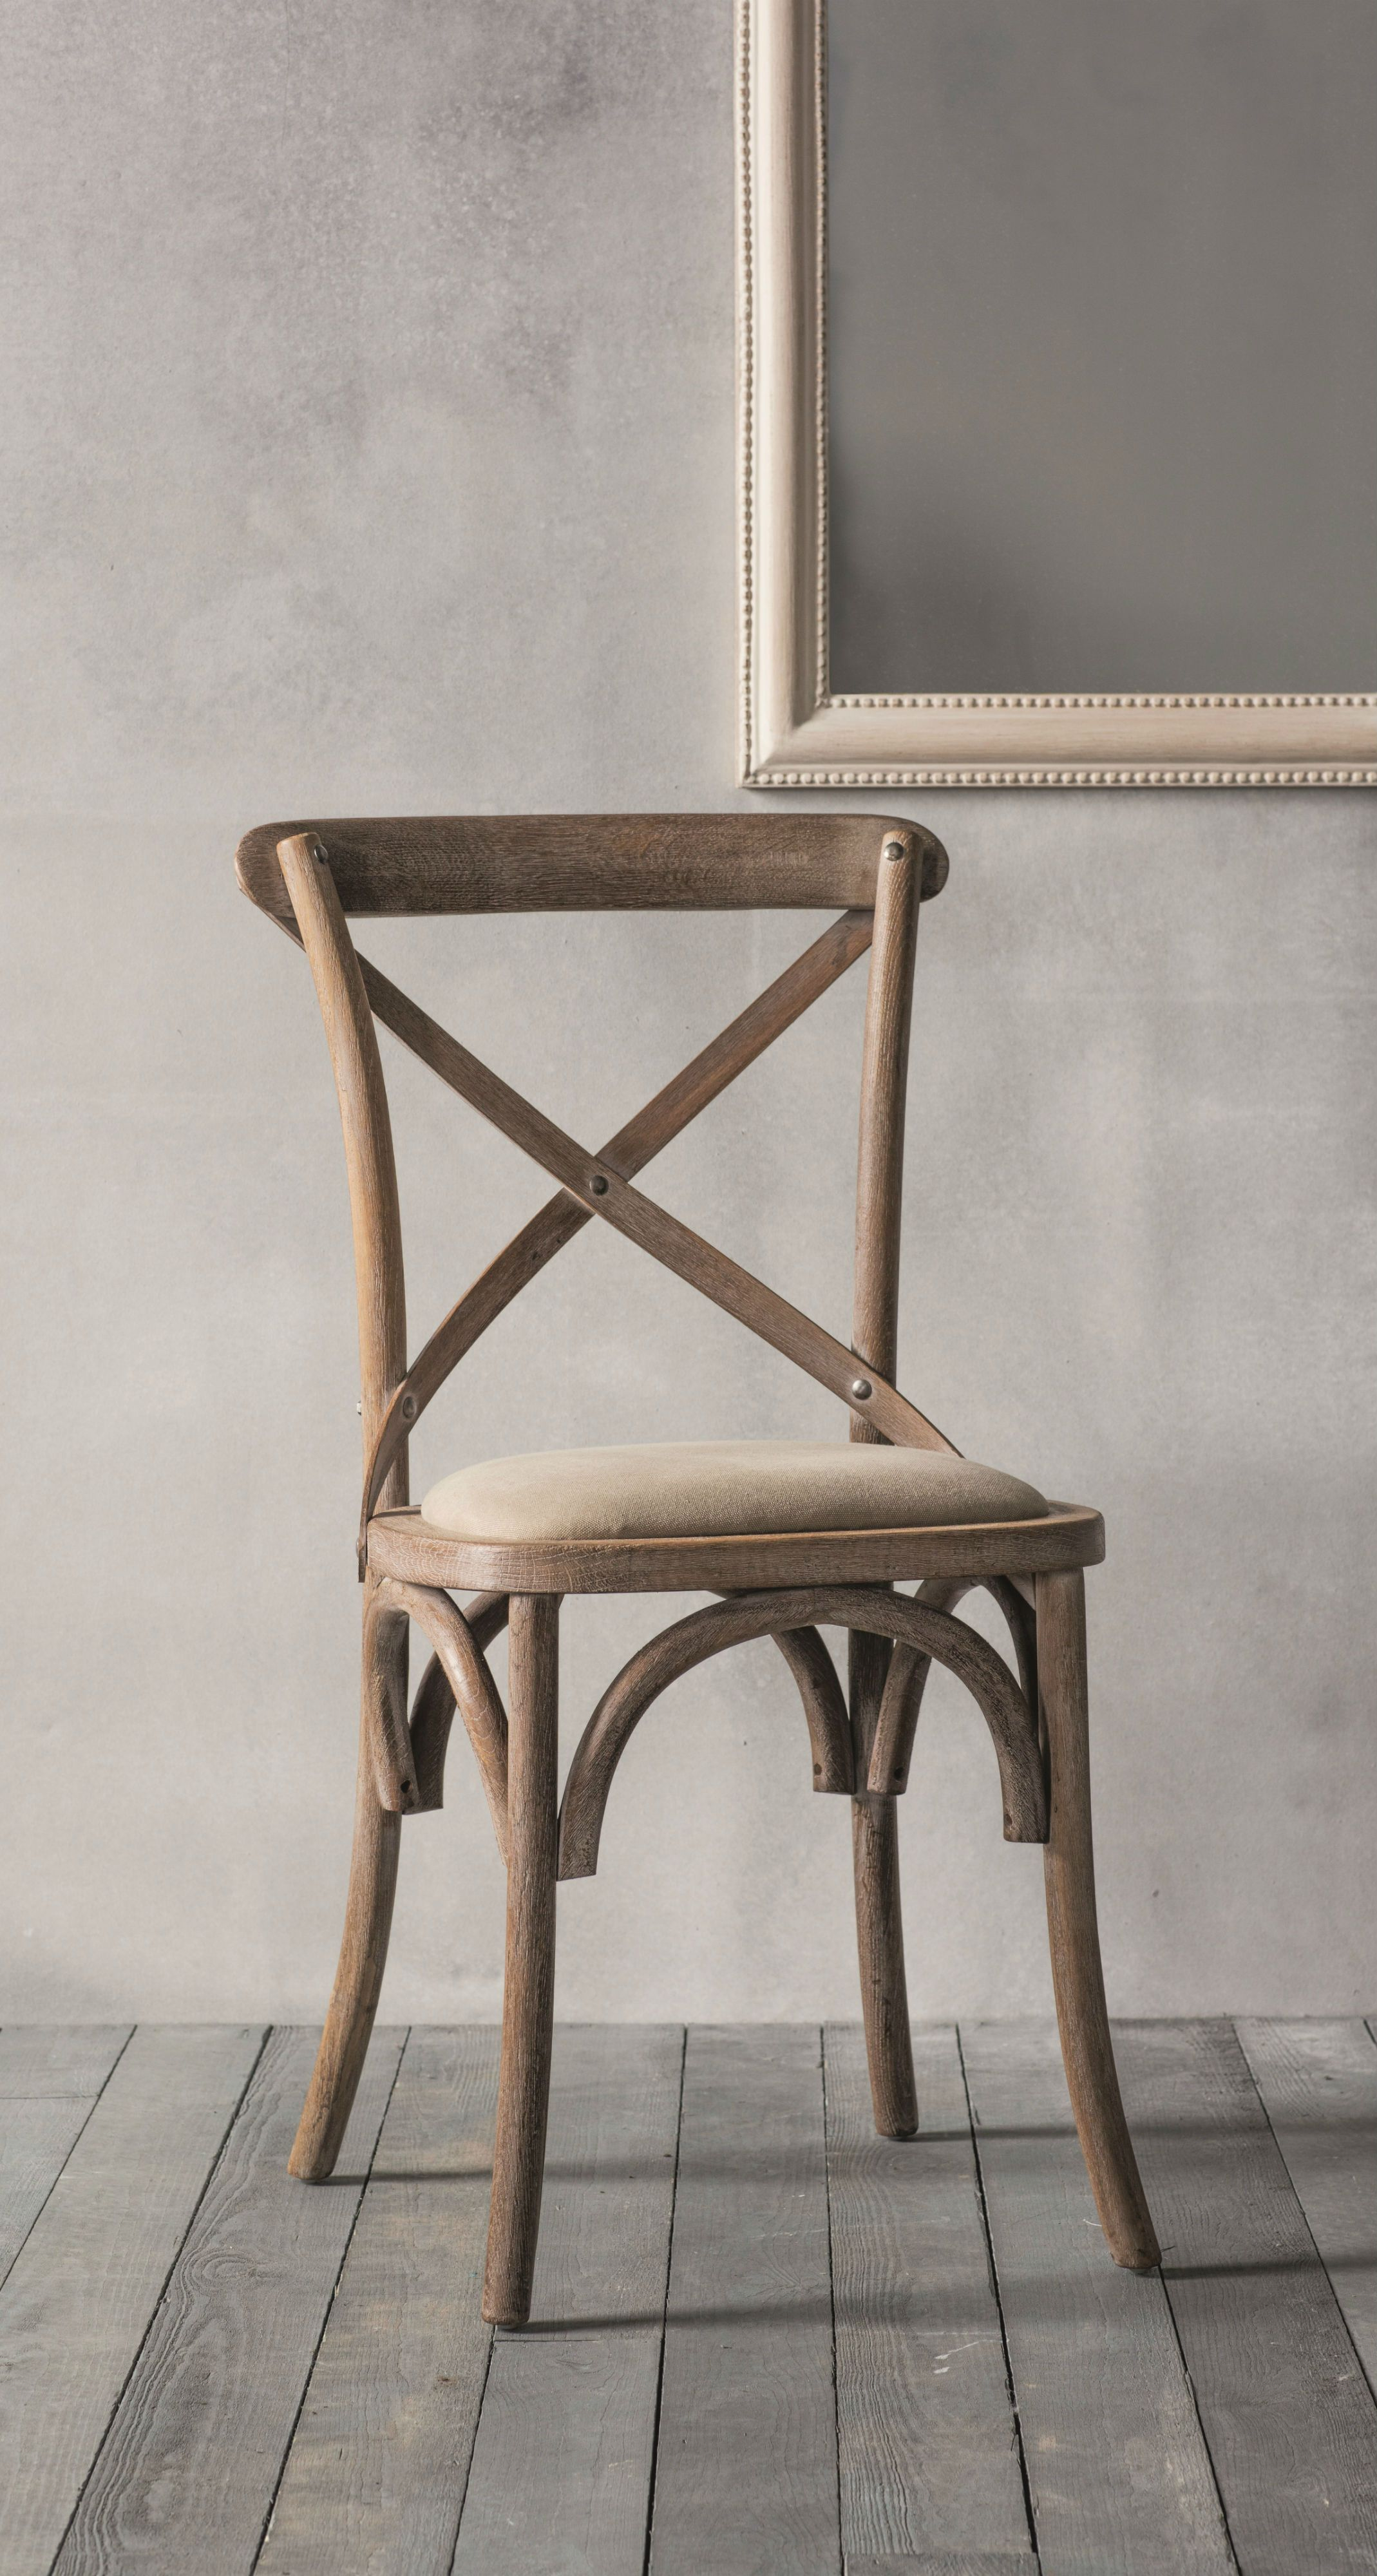 Rustic Style Caf Chair For Your Dining Room Featuring